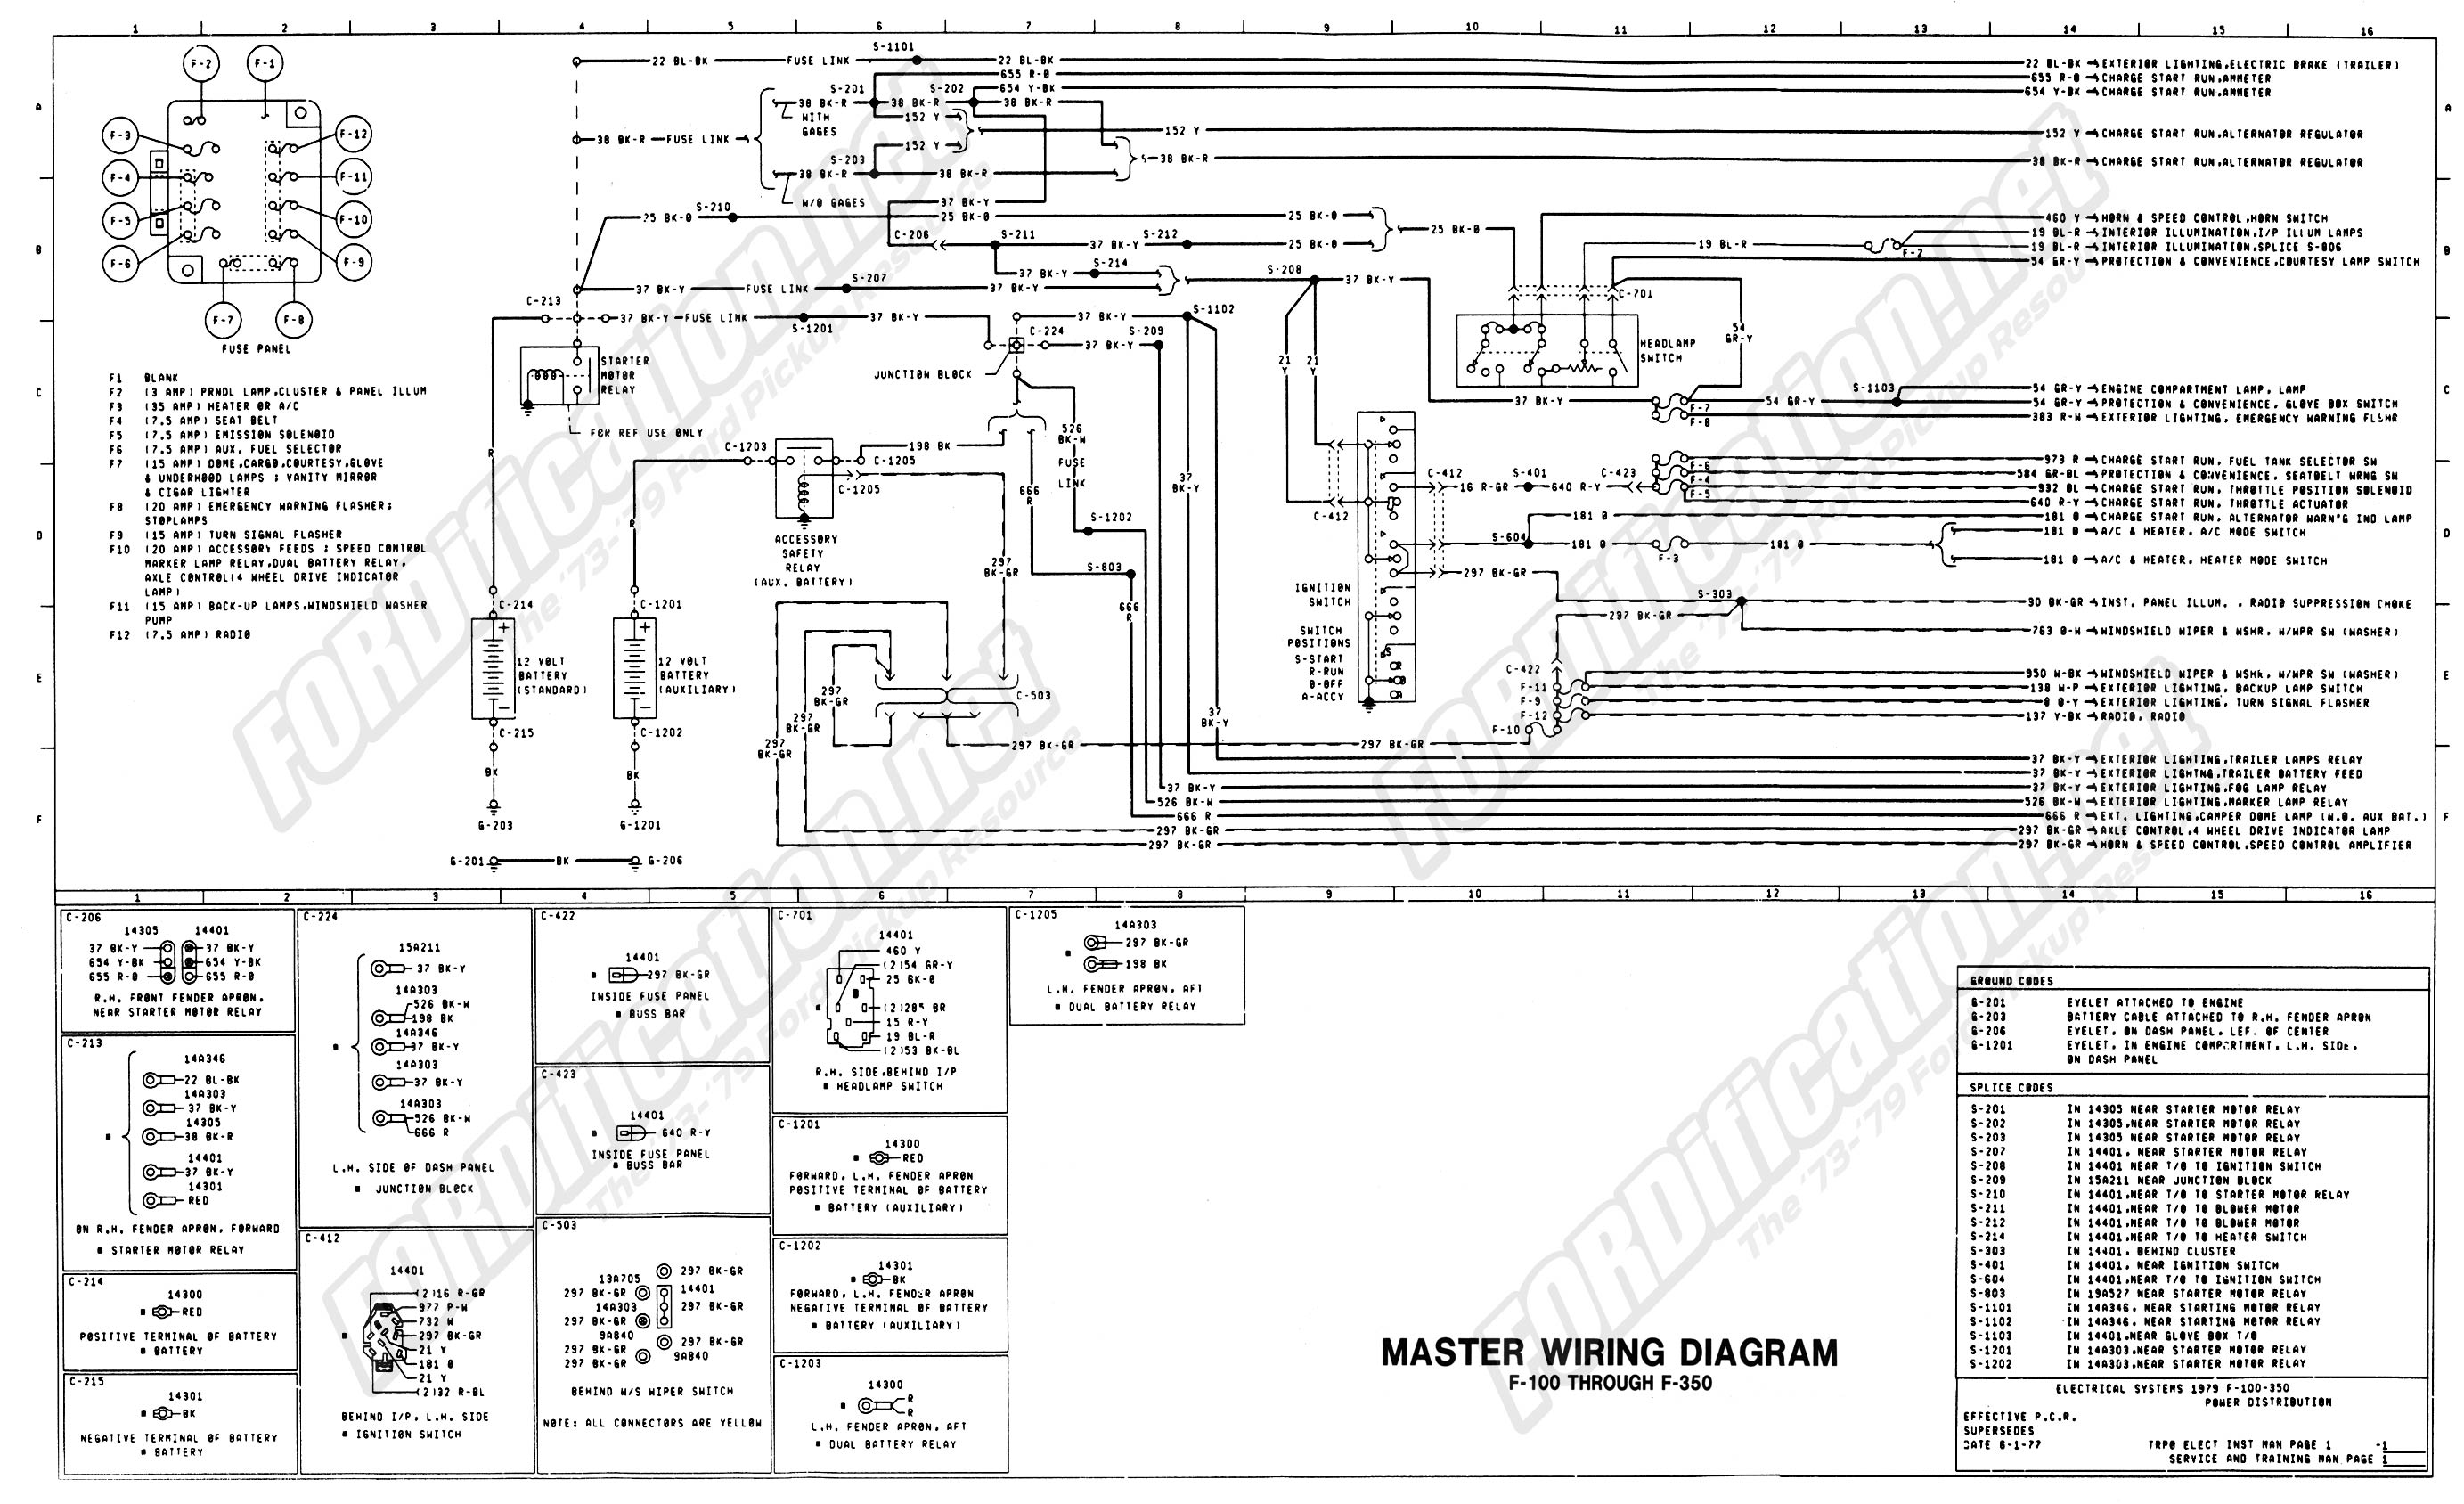 wiring_79master_1of9 1973 1979 ford truck wiring diagrams & schematics fordification net 2008 silverado ignition wiring diagram at gsmx.co